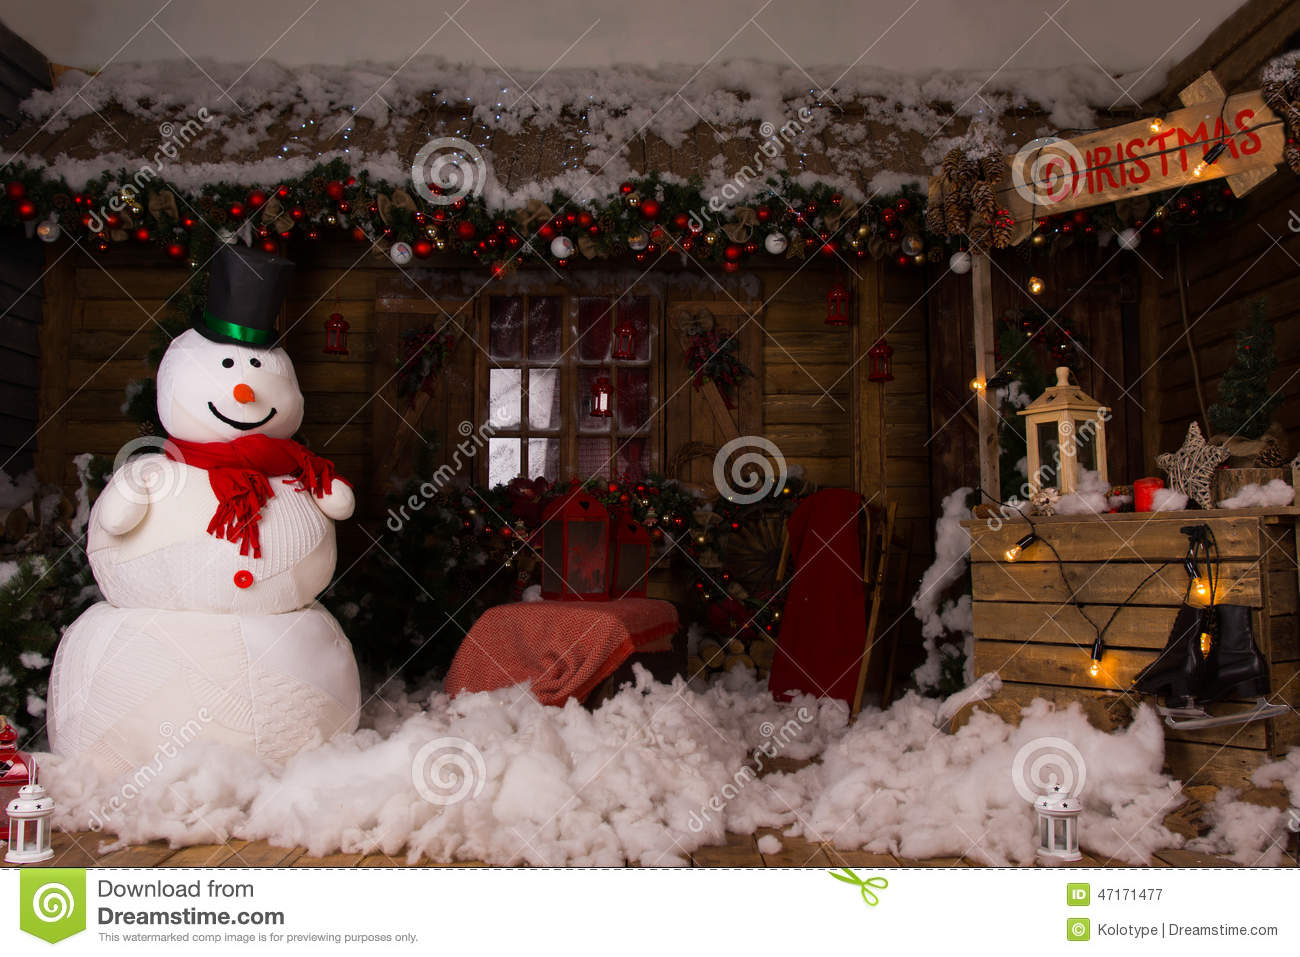 Attractive christmas decors inside a wooden house stock - Pictures of homes decorated for christmas on the inside ...